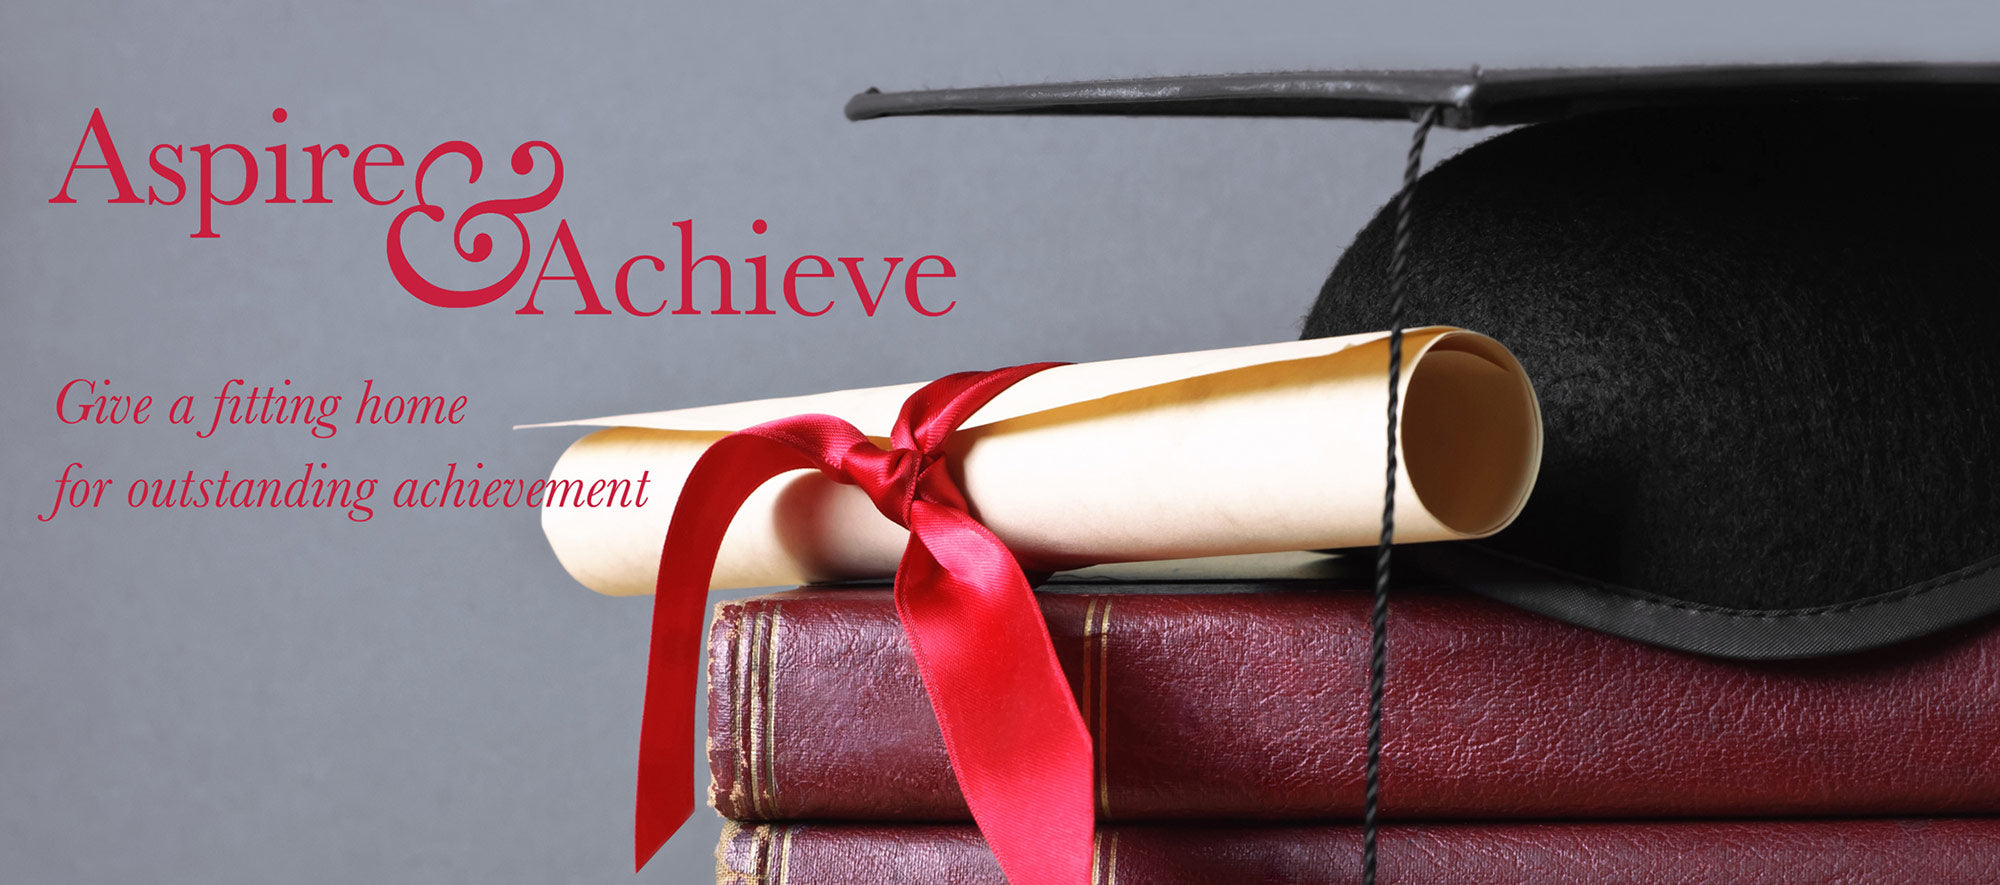 banner image for Hartnack & Company page for academic achievement